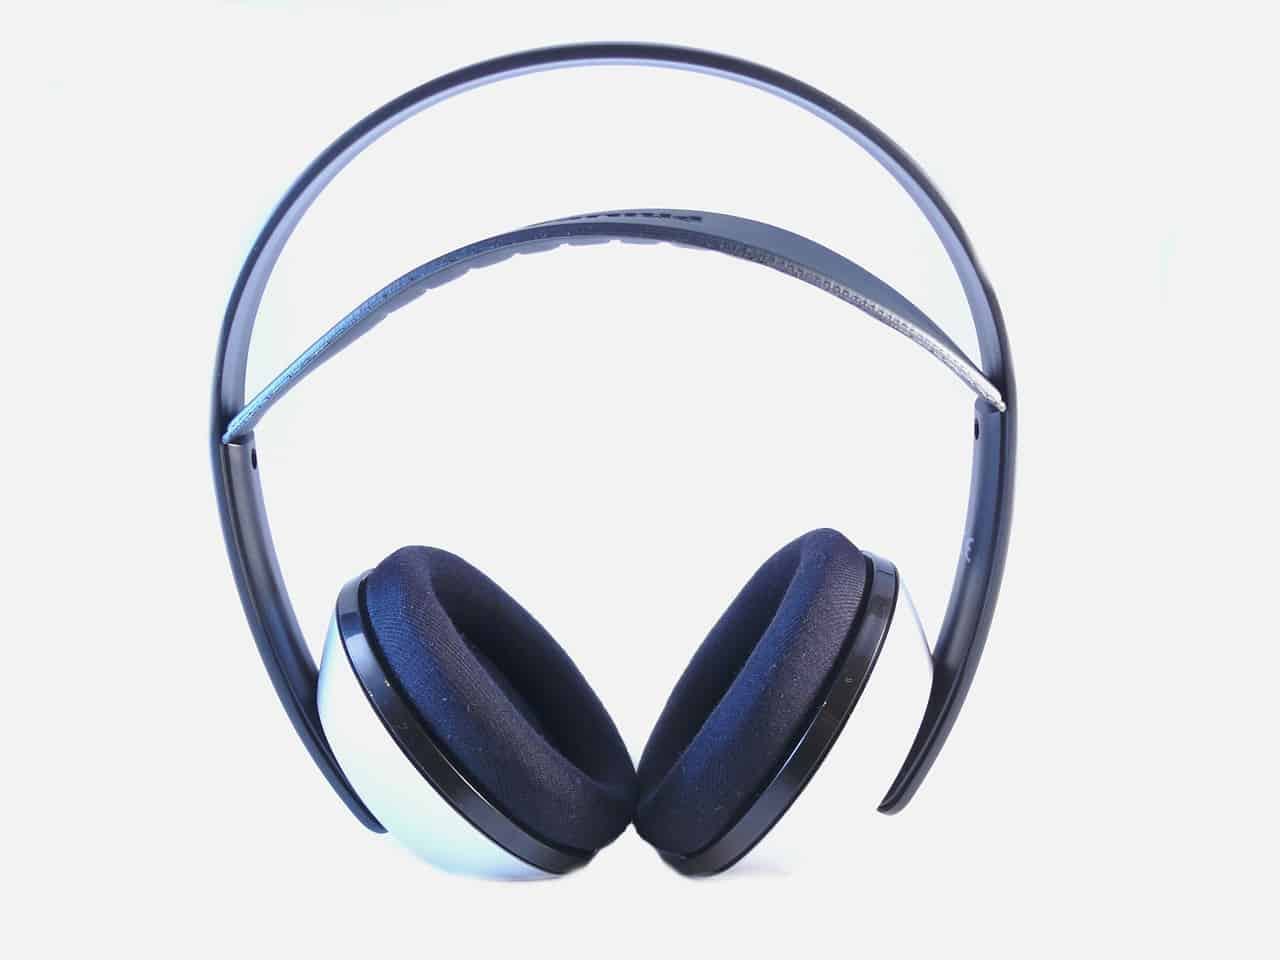 10 Best Bluetooth Headphones in 2019 [Buying Guide] - Music